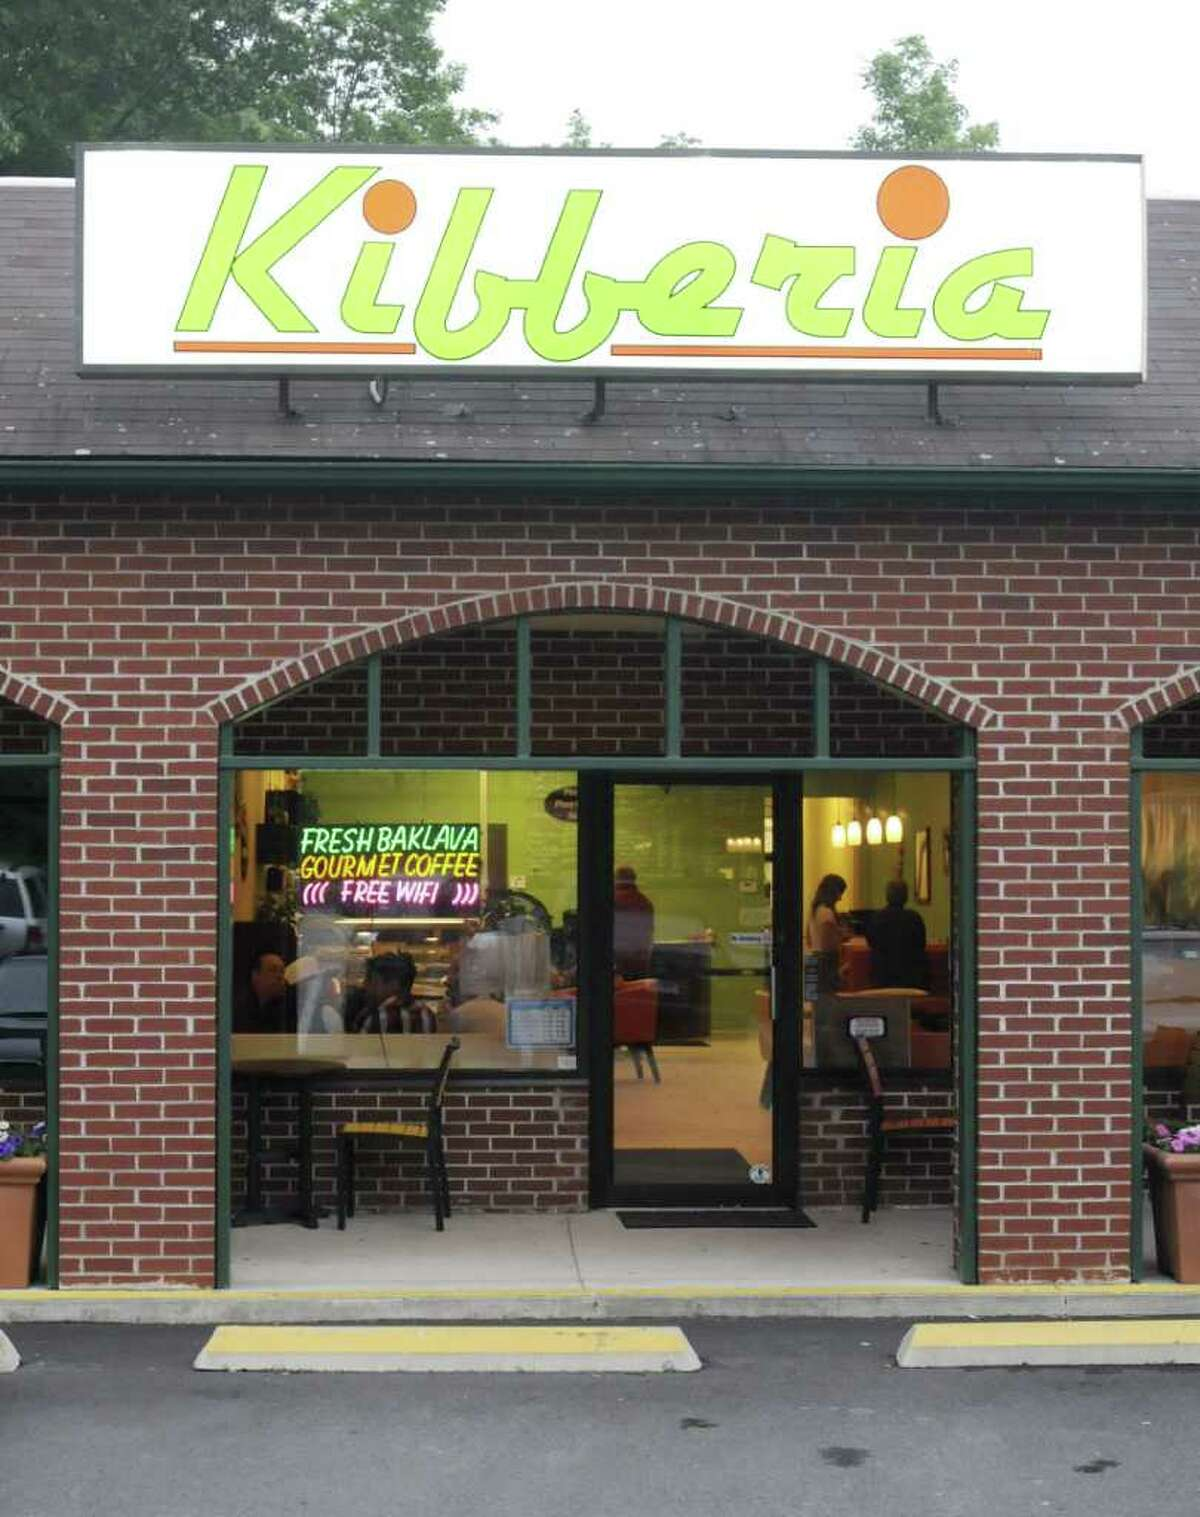 Kibberia, a Middle Eastern restaurant and cafe, in Danbury, is opening a location in Westport.